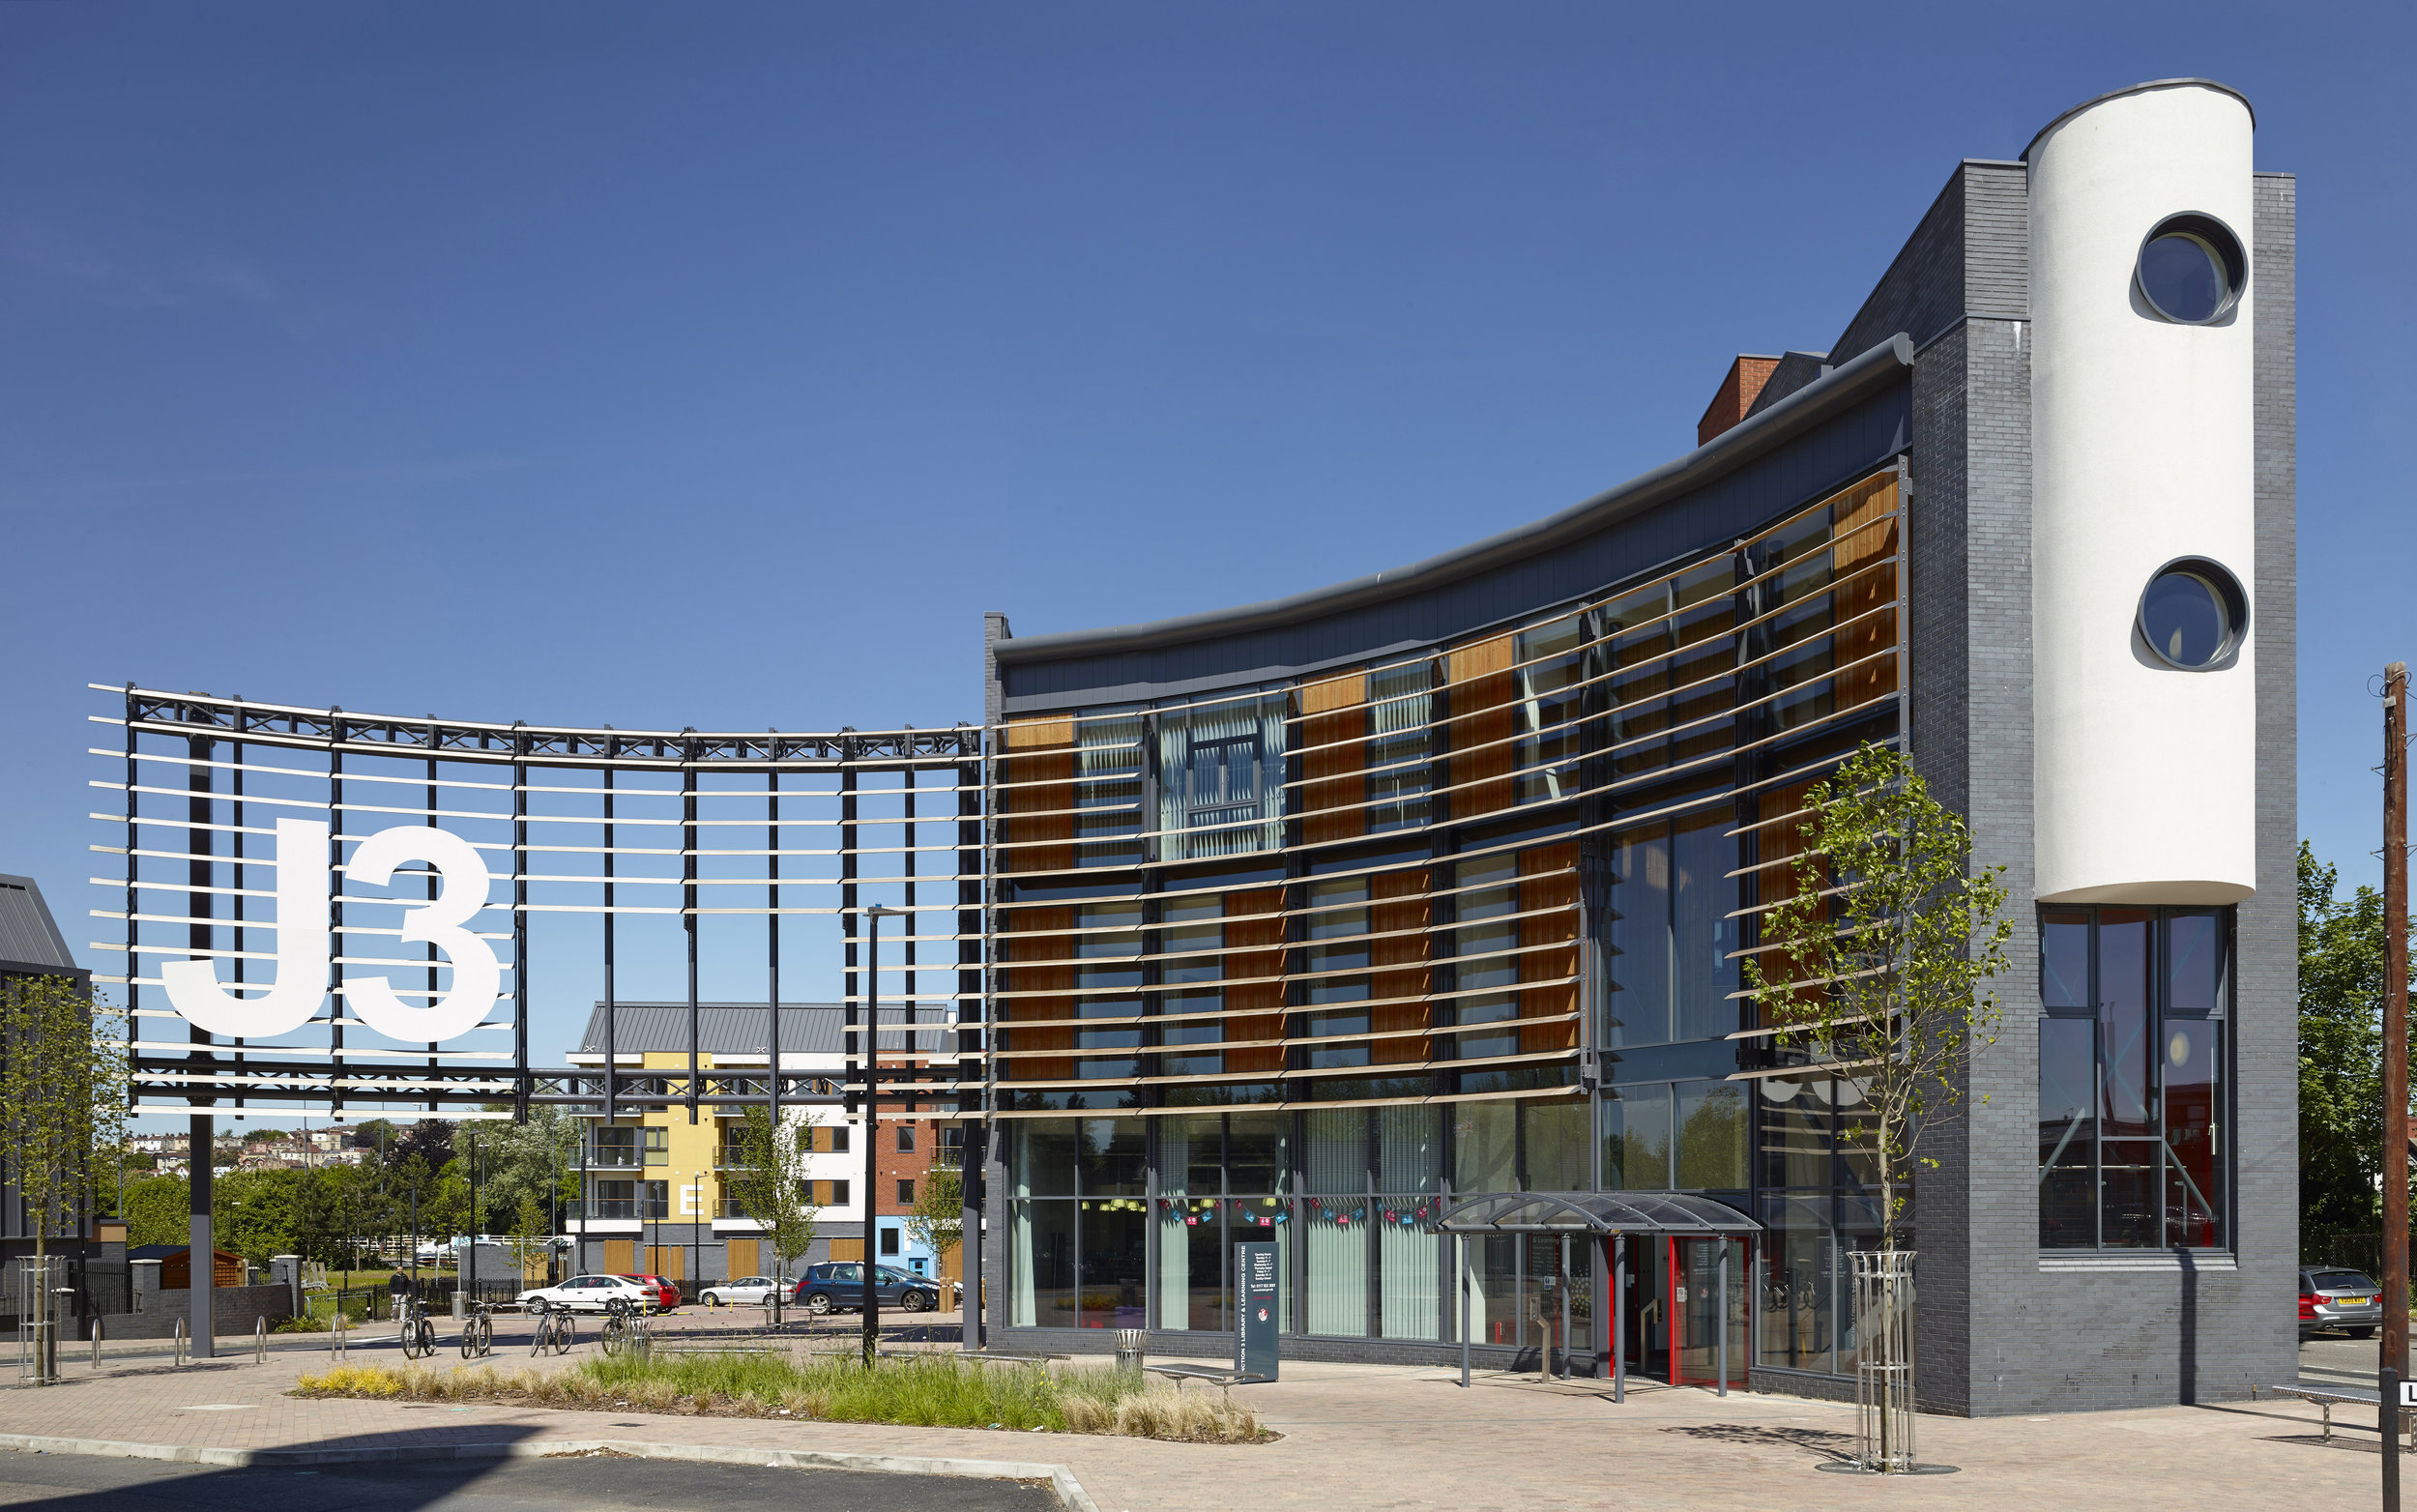 Junction 3, Easton, Bristol: The award winning J3 has revitalised a neglected part of the City